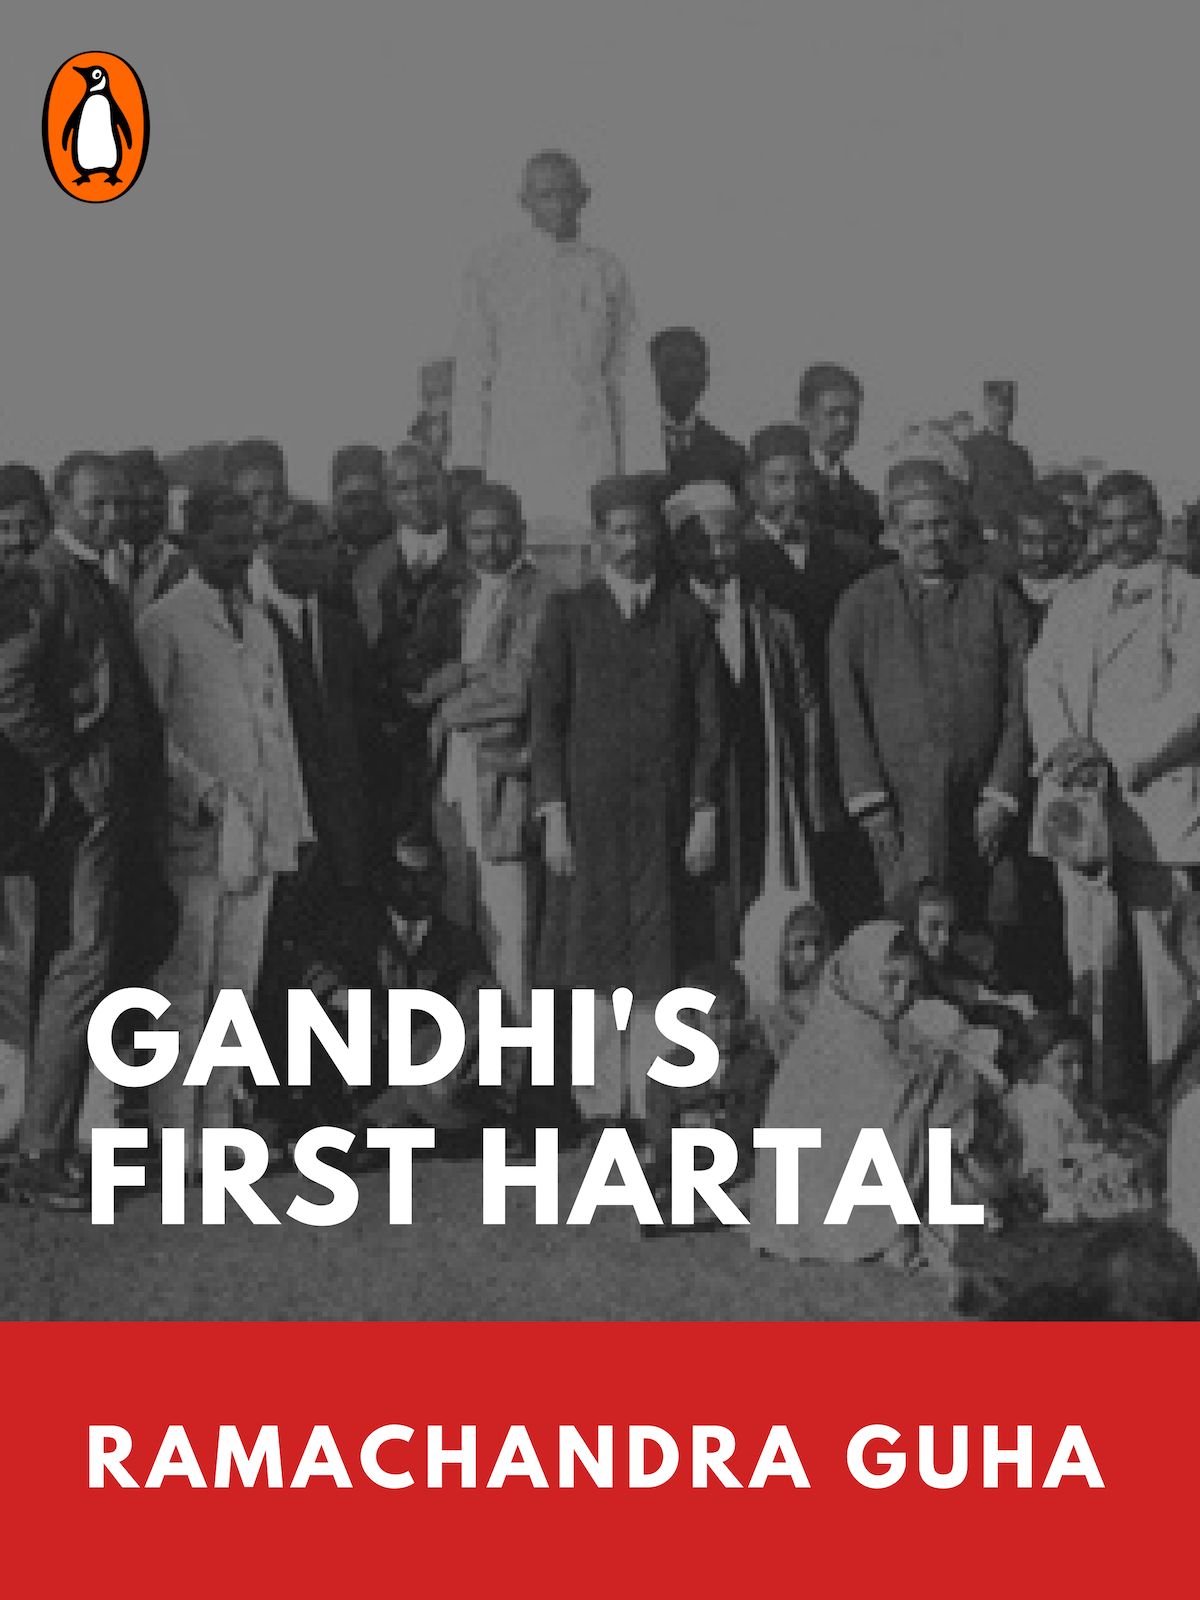 Gandhi's First Hartal